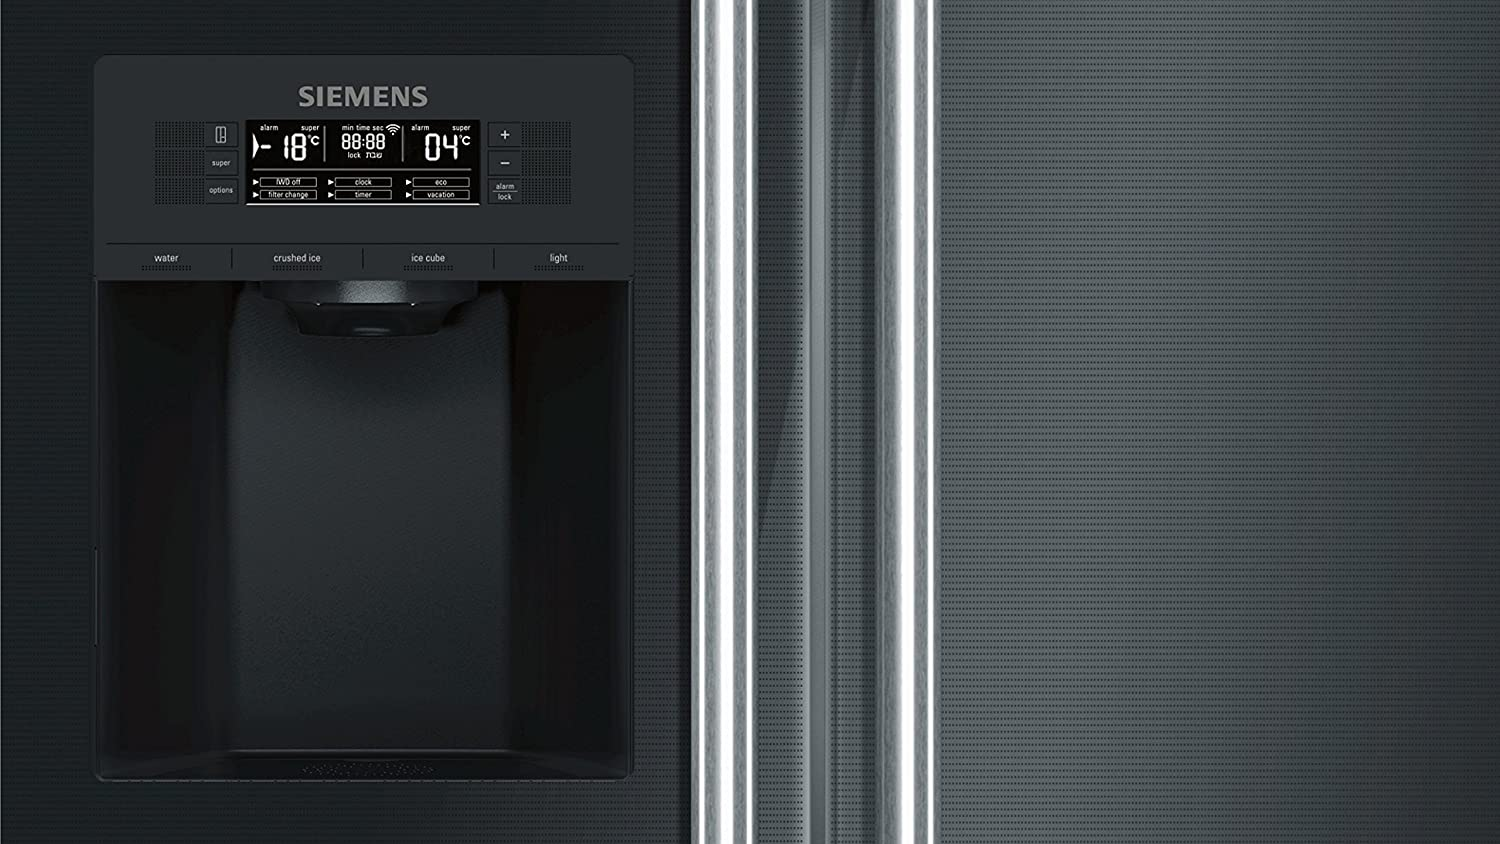 Siemens Kühlschrank Coolbox : Siemens ka92dsb30 home connect iq700 side by side a 175 6 cm